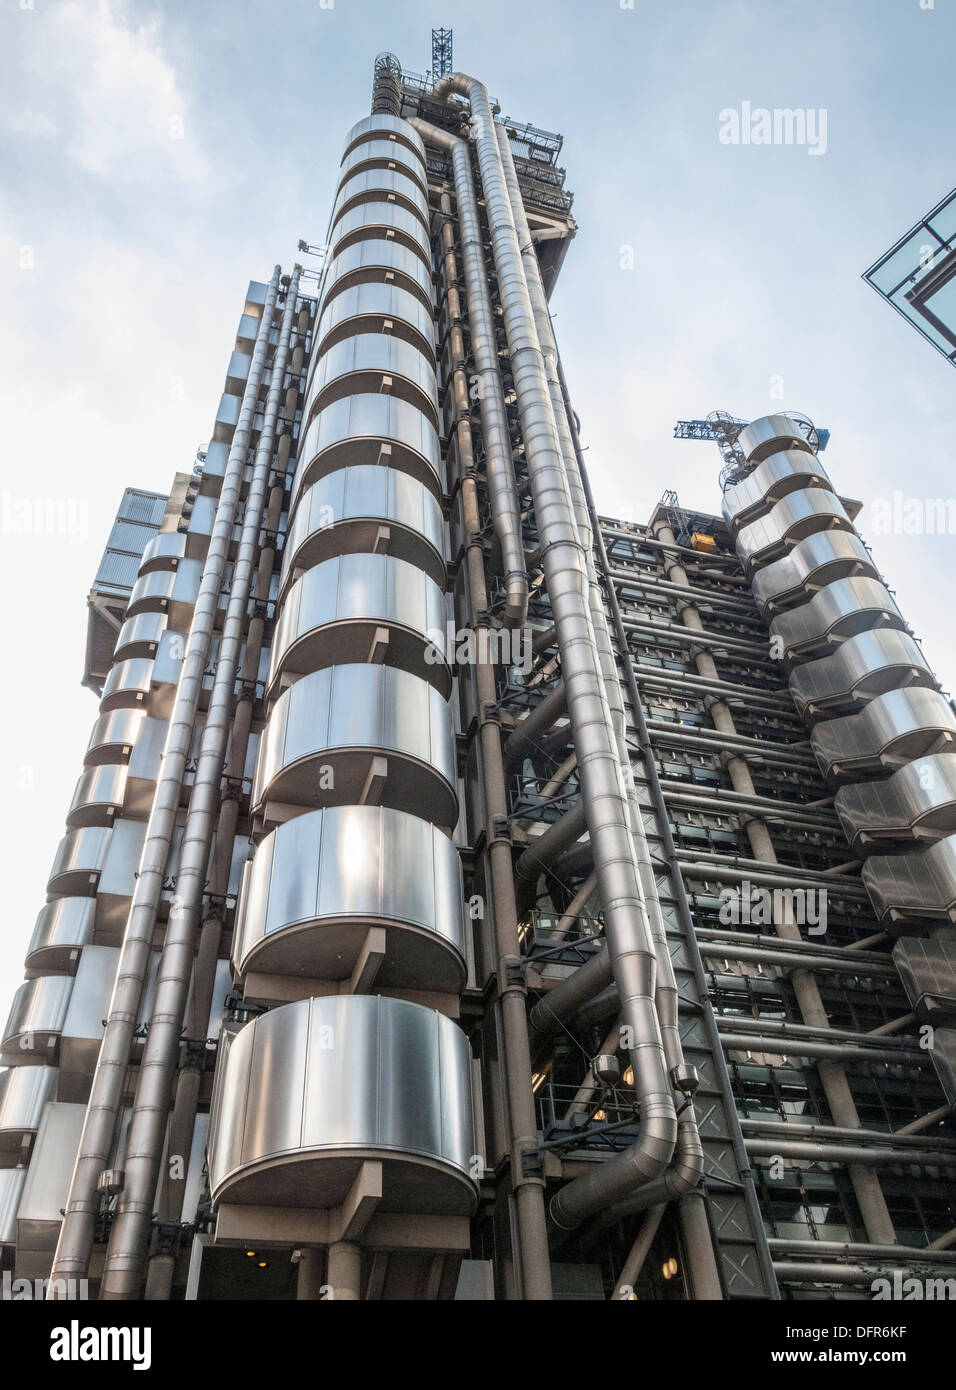 The Lloyd's Building in Lime Street, City of London, UK, the heart of the insurance industry in the financial district - Stock Image